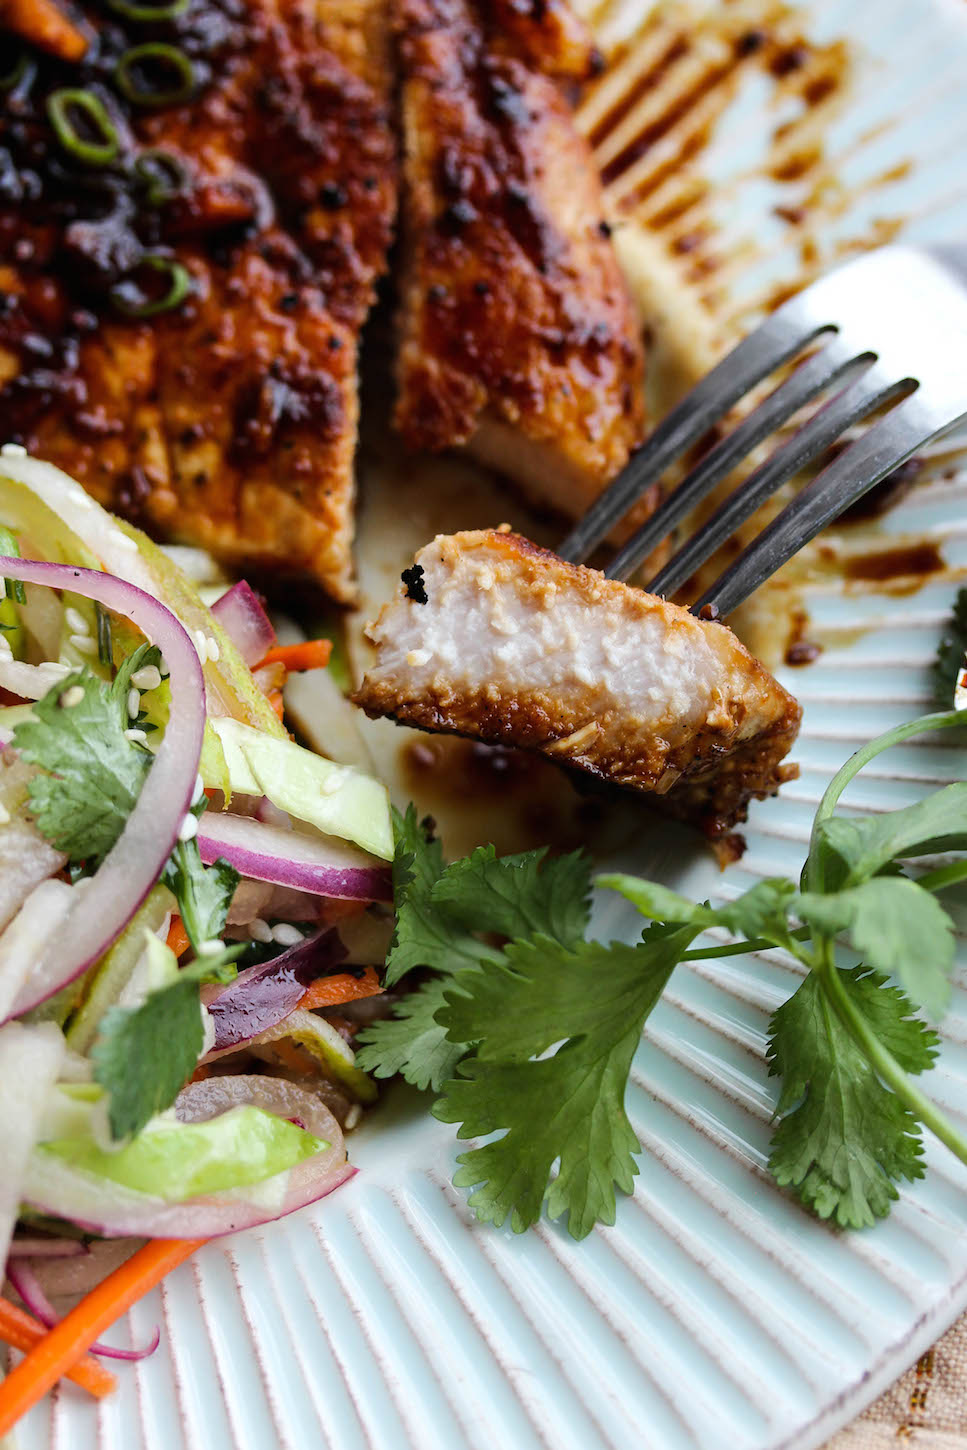 These Pork Chops Are Seared To Perfection And Coated With A Tangy Ginger Soy Glaze That Is Out Of This World I Mean Holy Flavor Bomb The Sweet And Savory